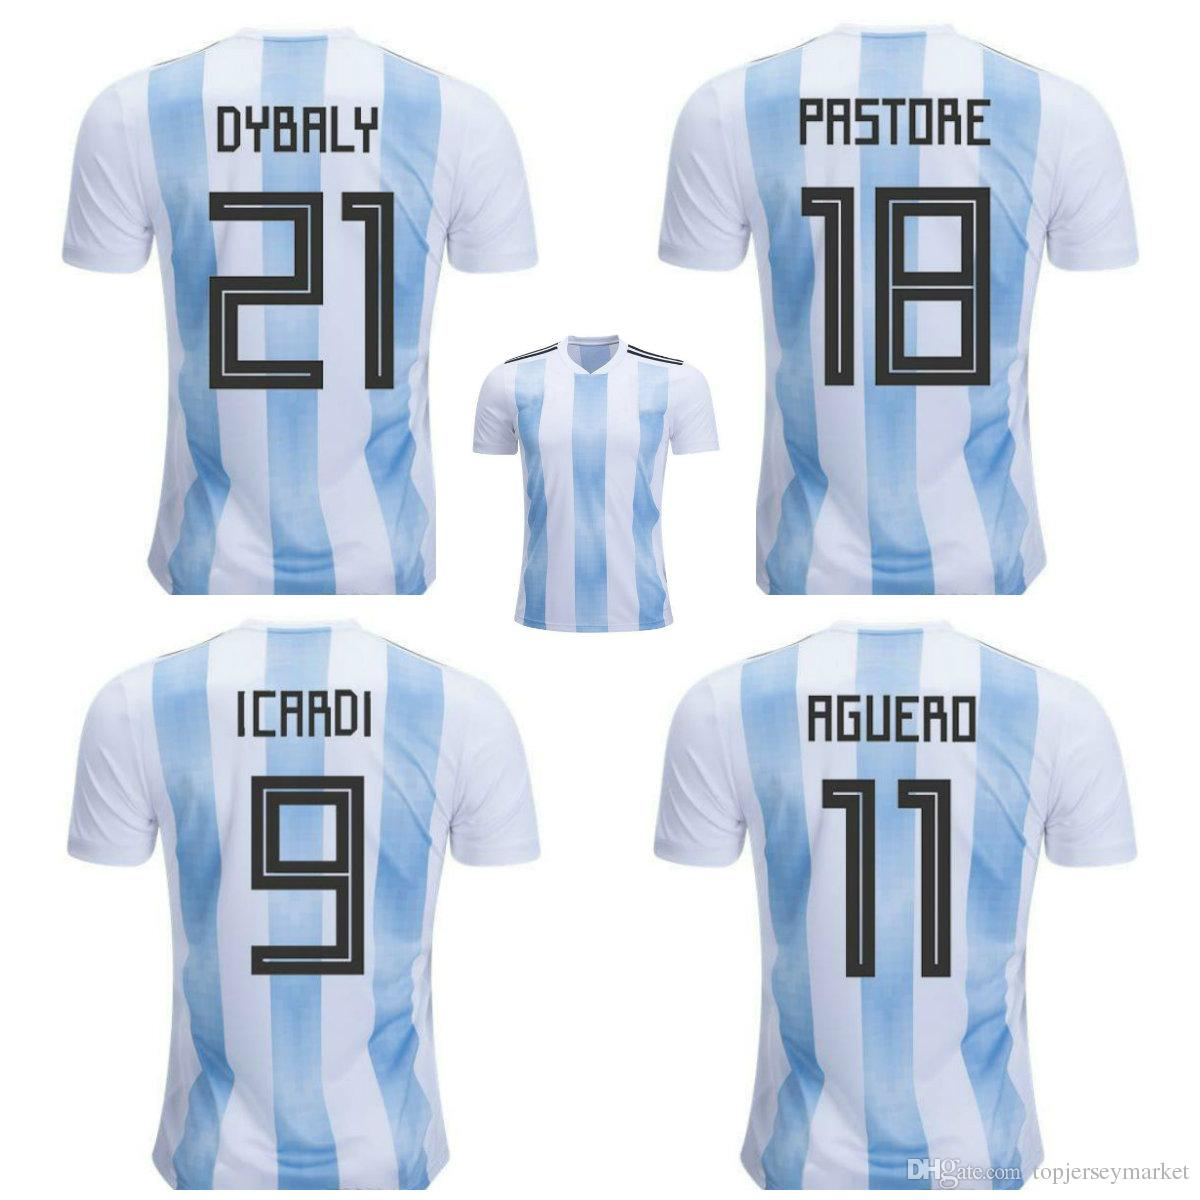 ed7ca55da68 2019 New 2018 World Cup Argentina Home Soccer Jersey 18 19 MESSI DI MARIA  AGUERO Thai Quality Argentina Camisas Football Shirts From Topjerseymarket